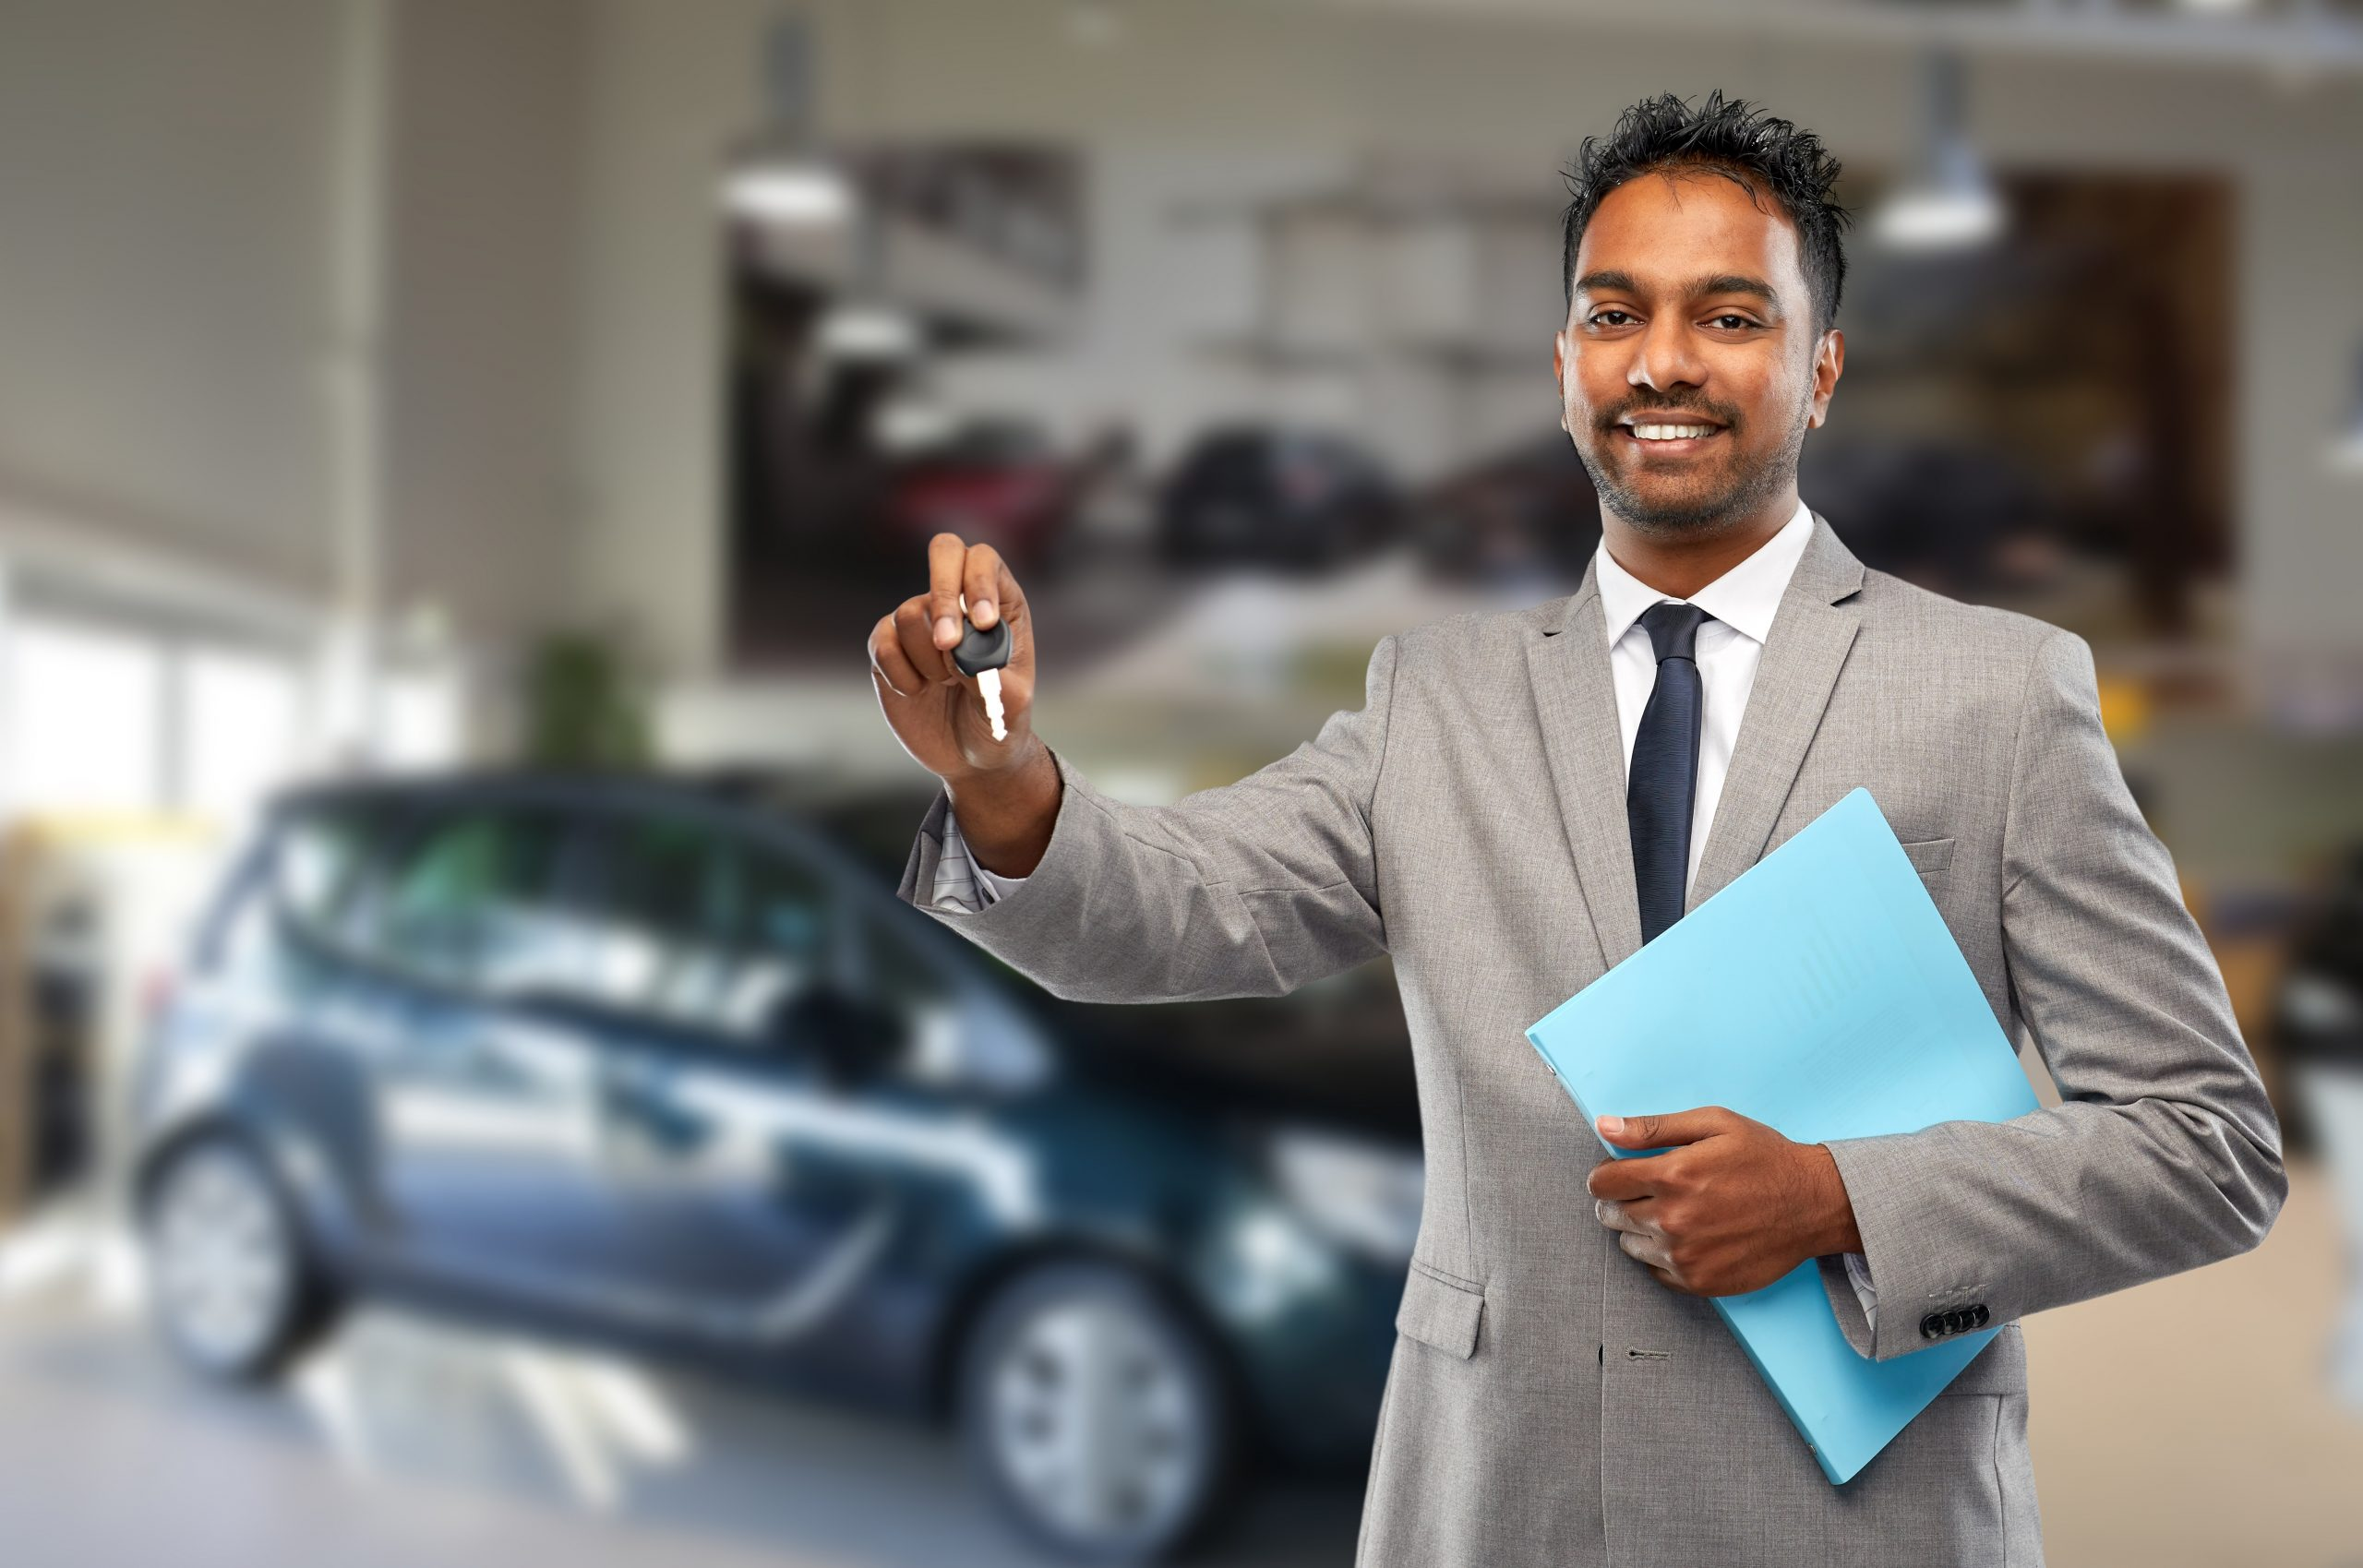 how does getting an auto loan work